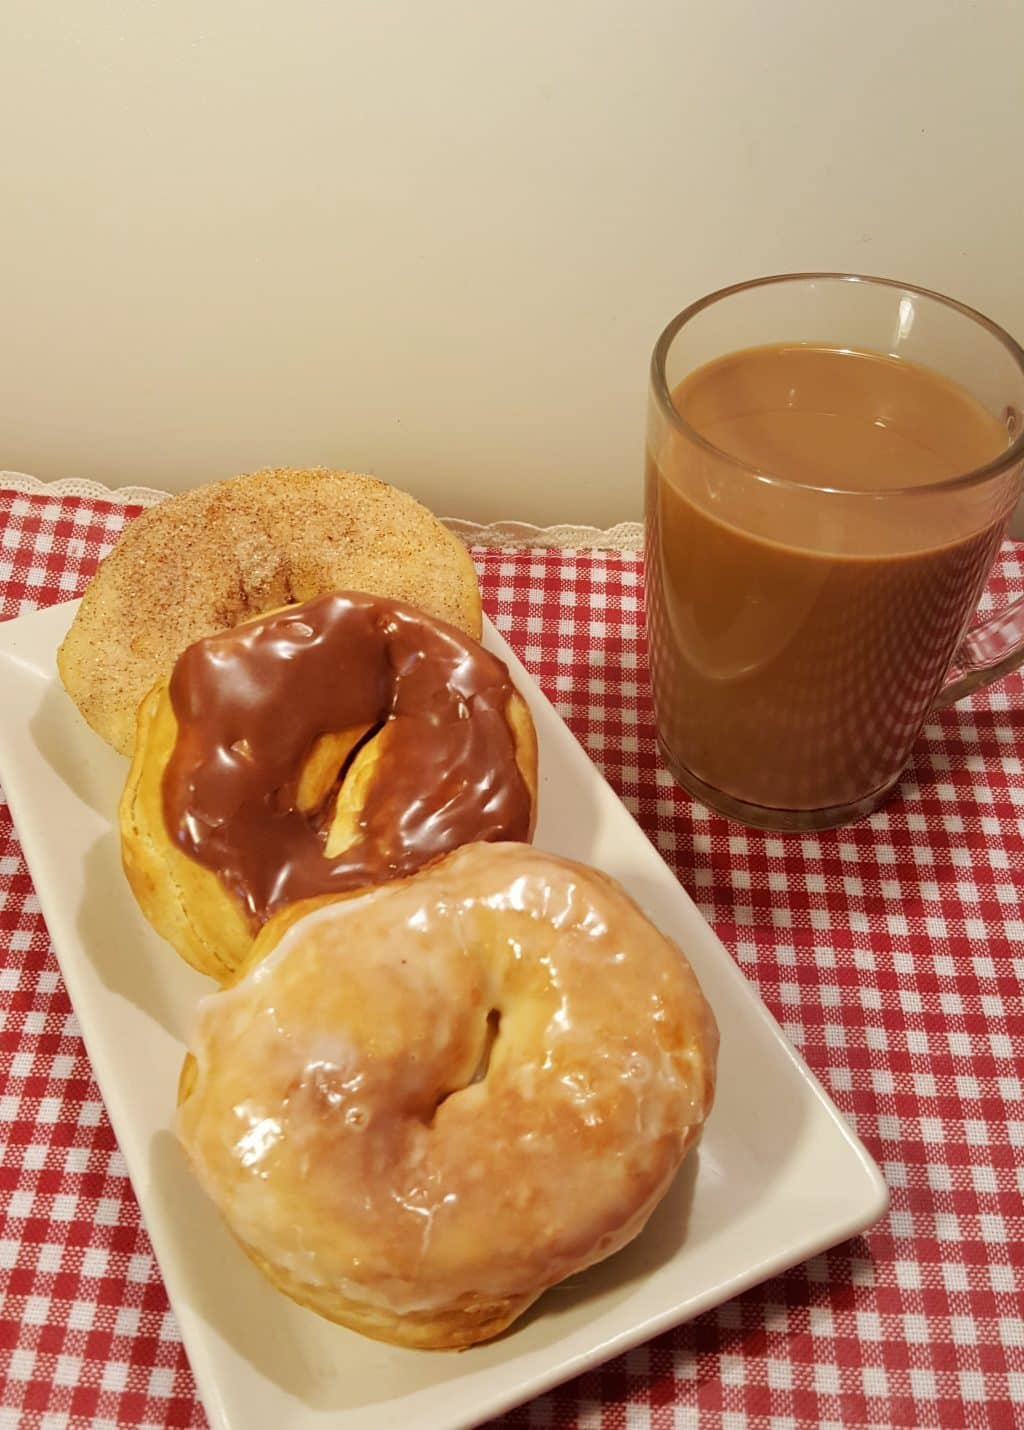 Vanilla and Chocolate Glazed & Cinnamon Sugar Doughnuts on a white plate with a cup of hot coffee.